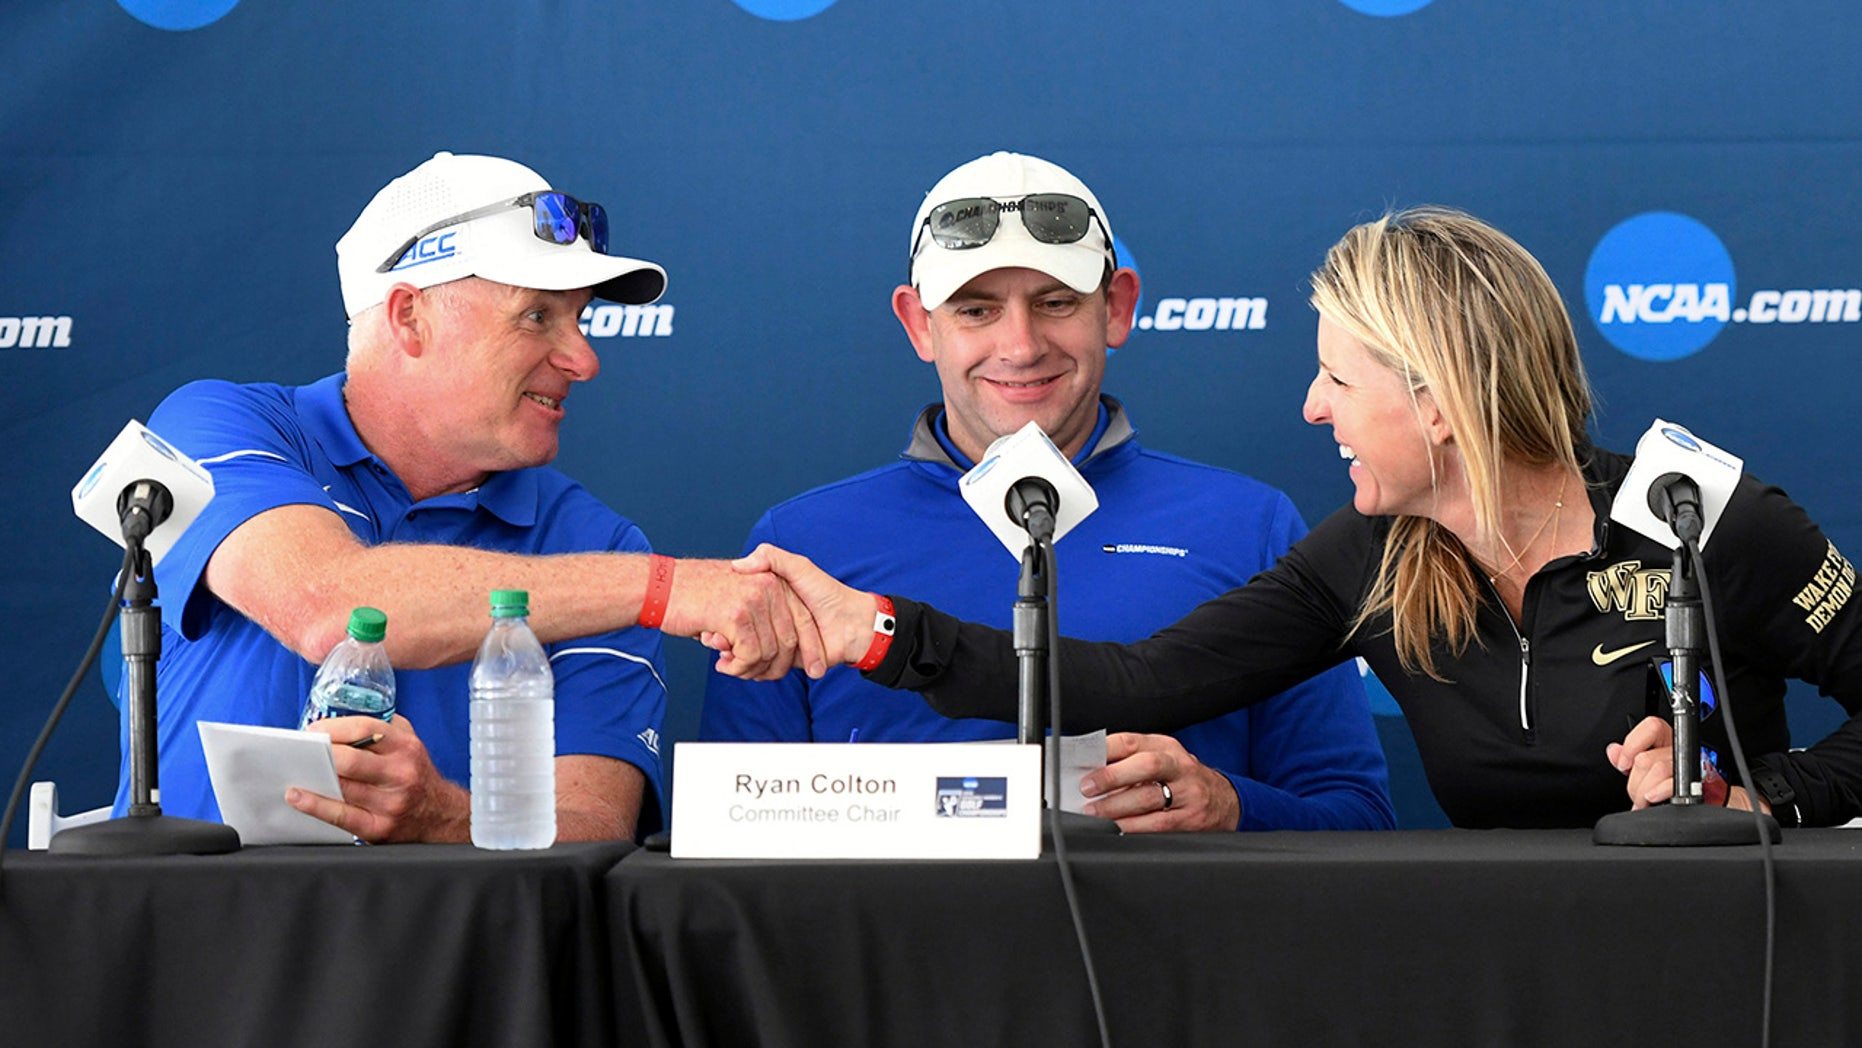 Ryan Colton, NCAA Division I Women's Golf Committee chair, center, watches as Duke women's golf coach Dan Brooks, left, shakes hands with Wake Forest women's golf coach Kim Lewellen after completing the parings for the final round of an NCAA college golf tournament, Wednesday, May 23, 2019, in Fayetteville, Ark. (AP Photo/Michael Woods)